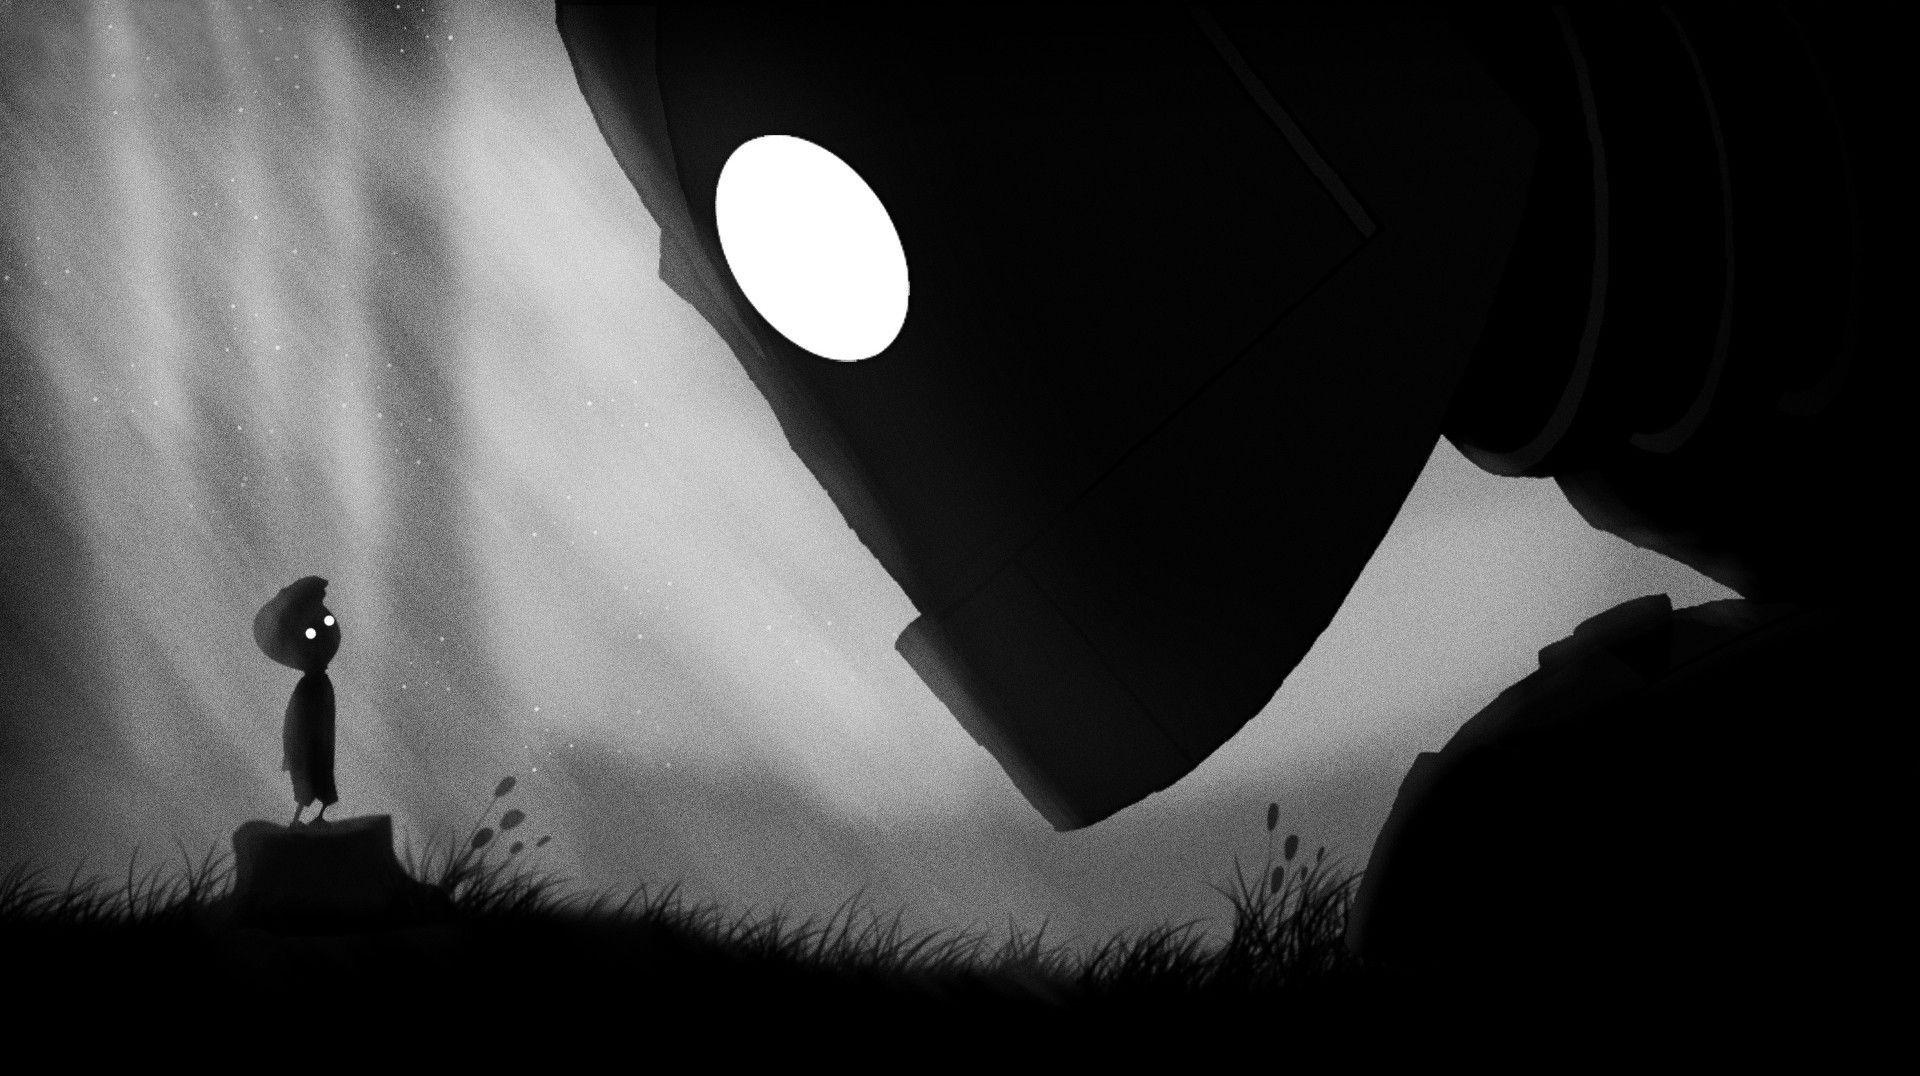 Wallpapers : shadow, silhouette, Limbo, The Iron Giant, light, shape